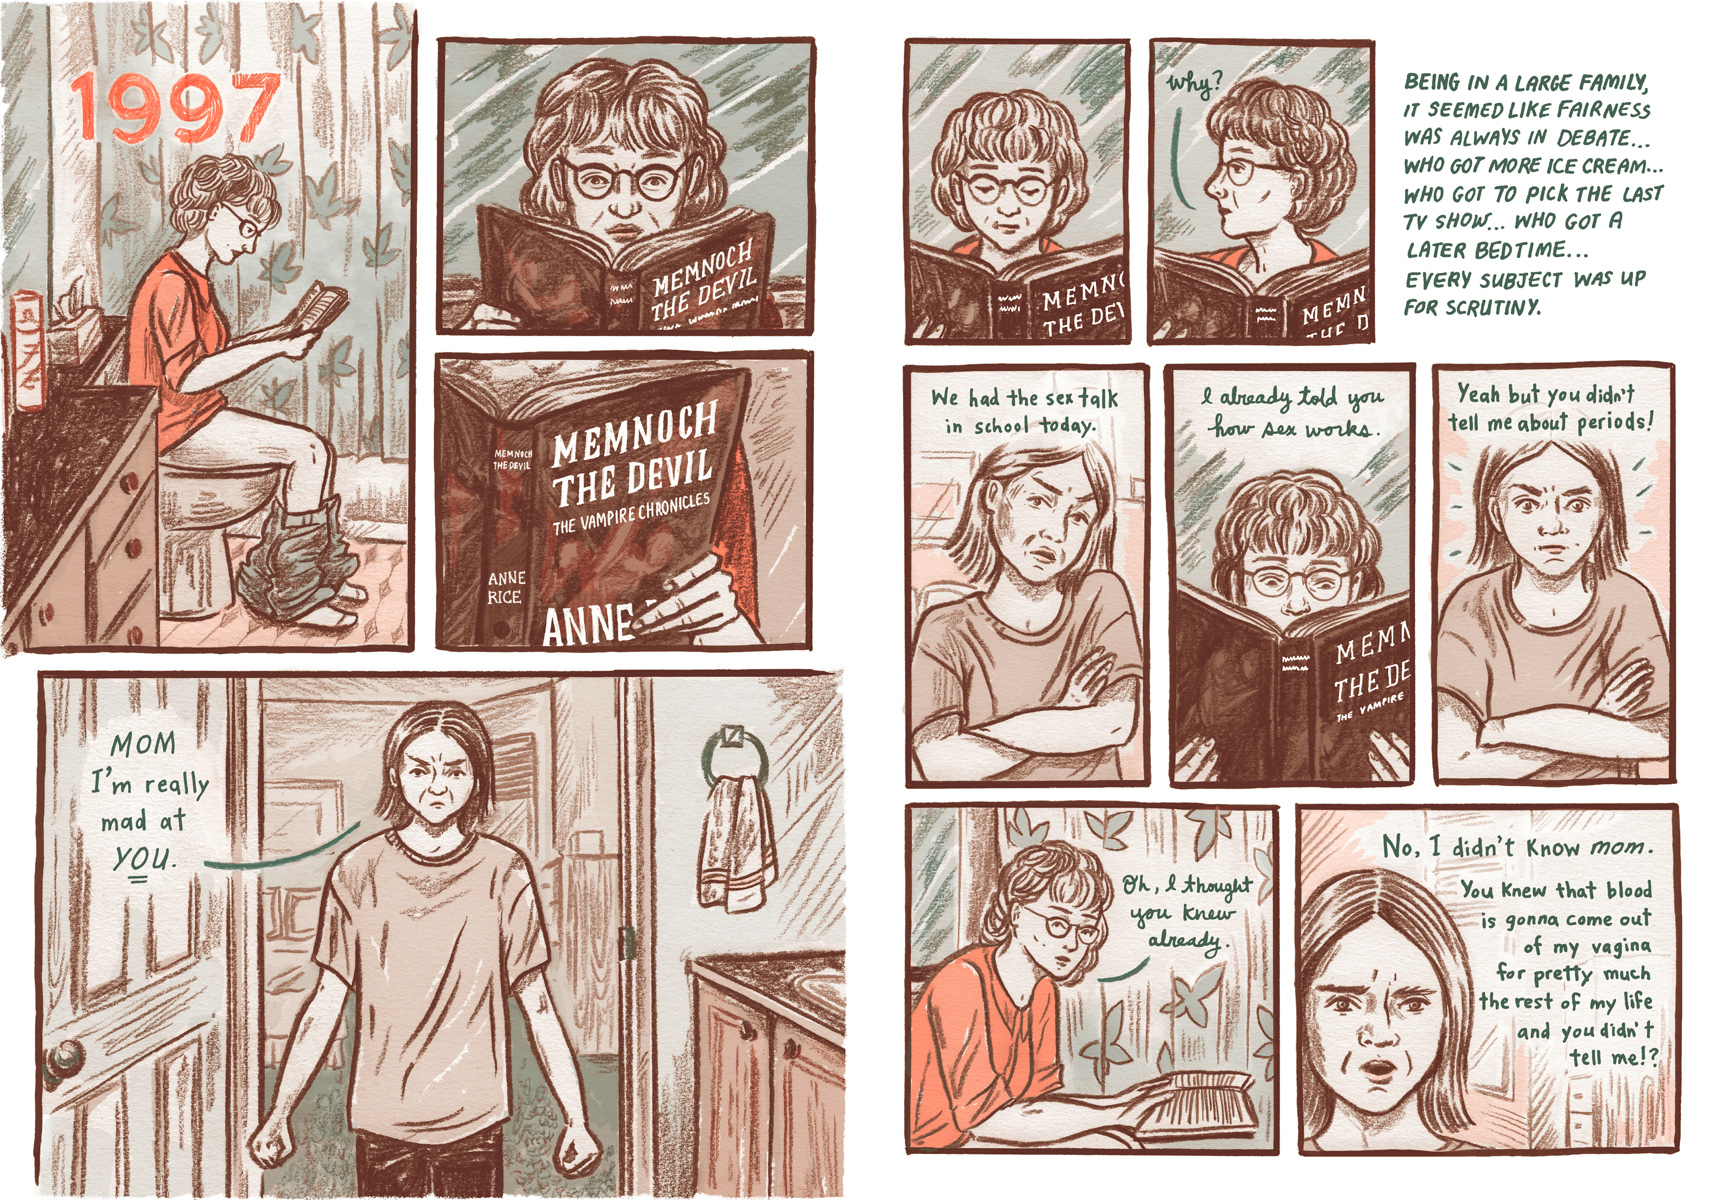 Chapter 5, pages 1 and 2 of Long Red Hair. Copyright 2015 Meags Fitzgerald.